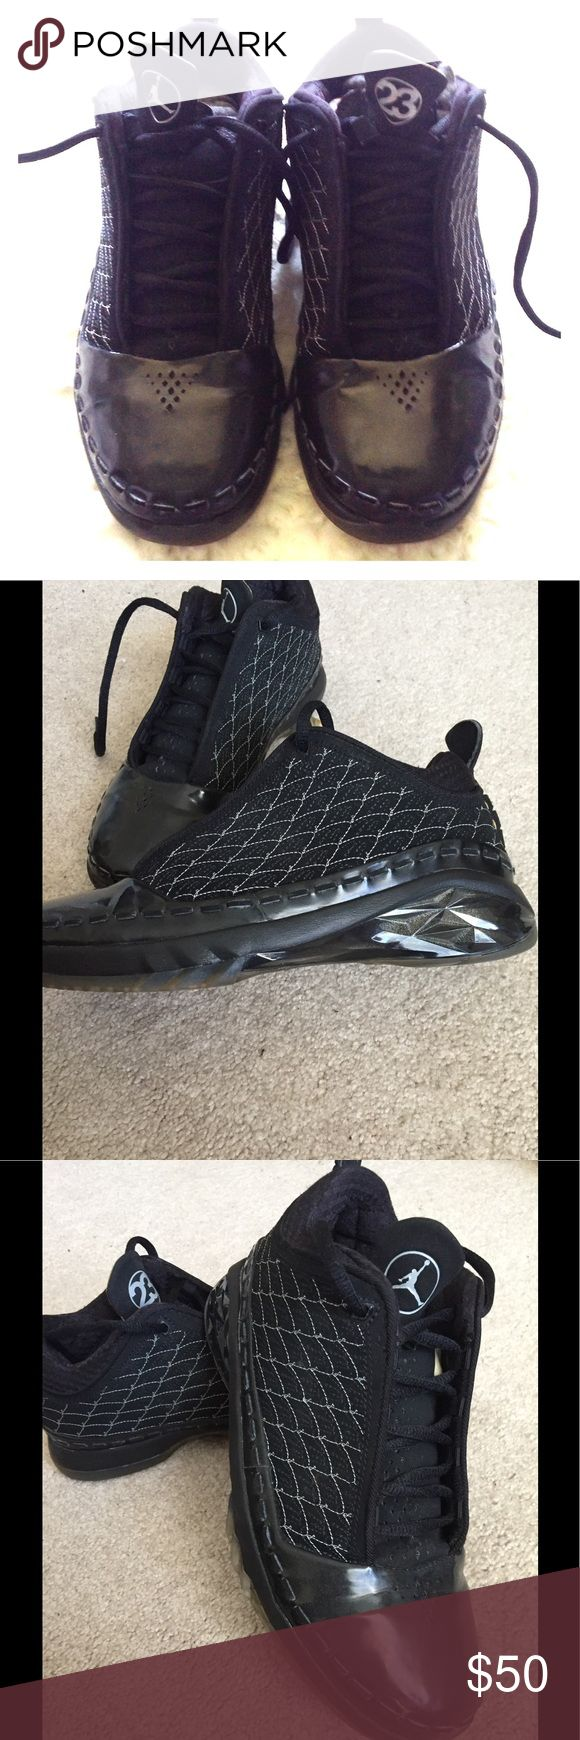 Air Jordan XX3 Low (Kids) Excellent preowned condition. Black with dark charcoal-silver stitching. Released in 2008. Jordan Shoes Sneakers